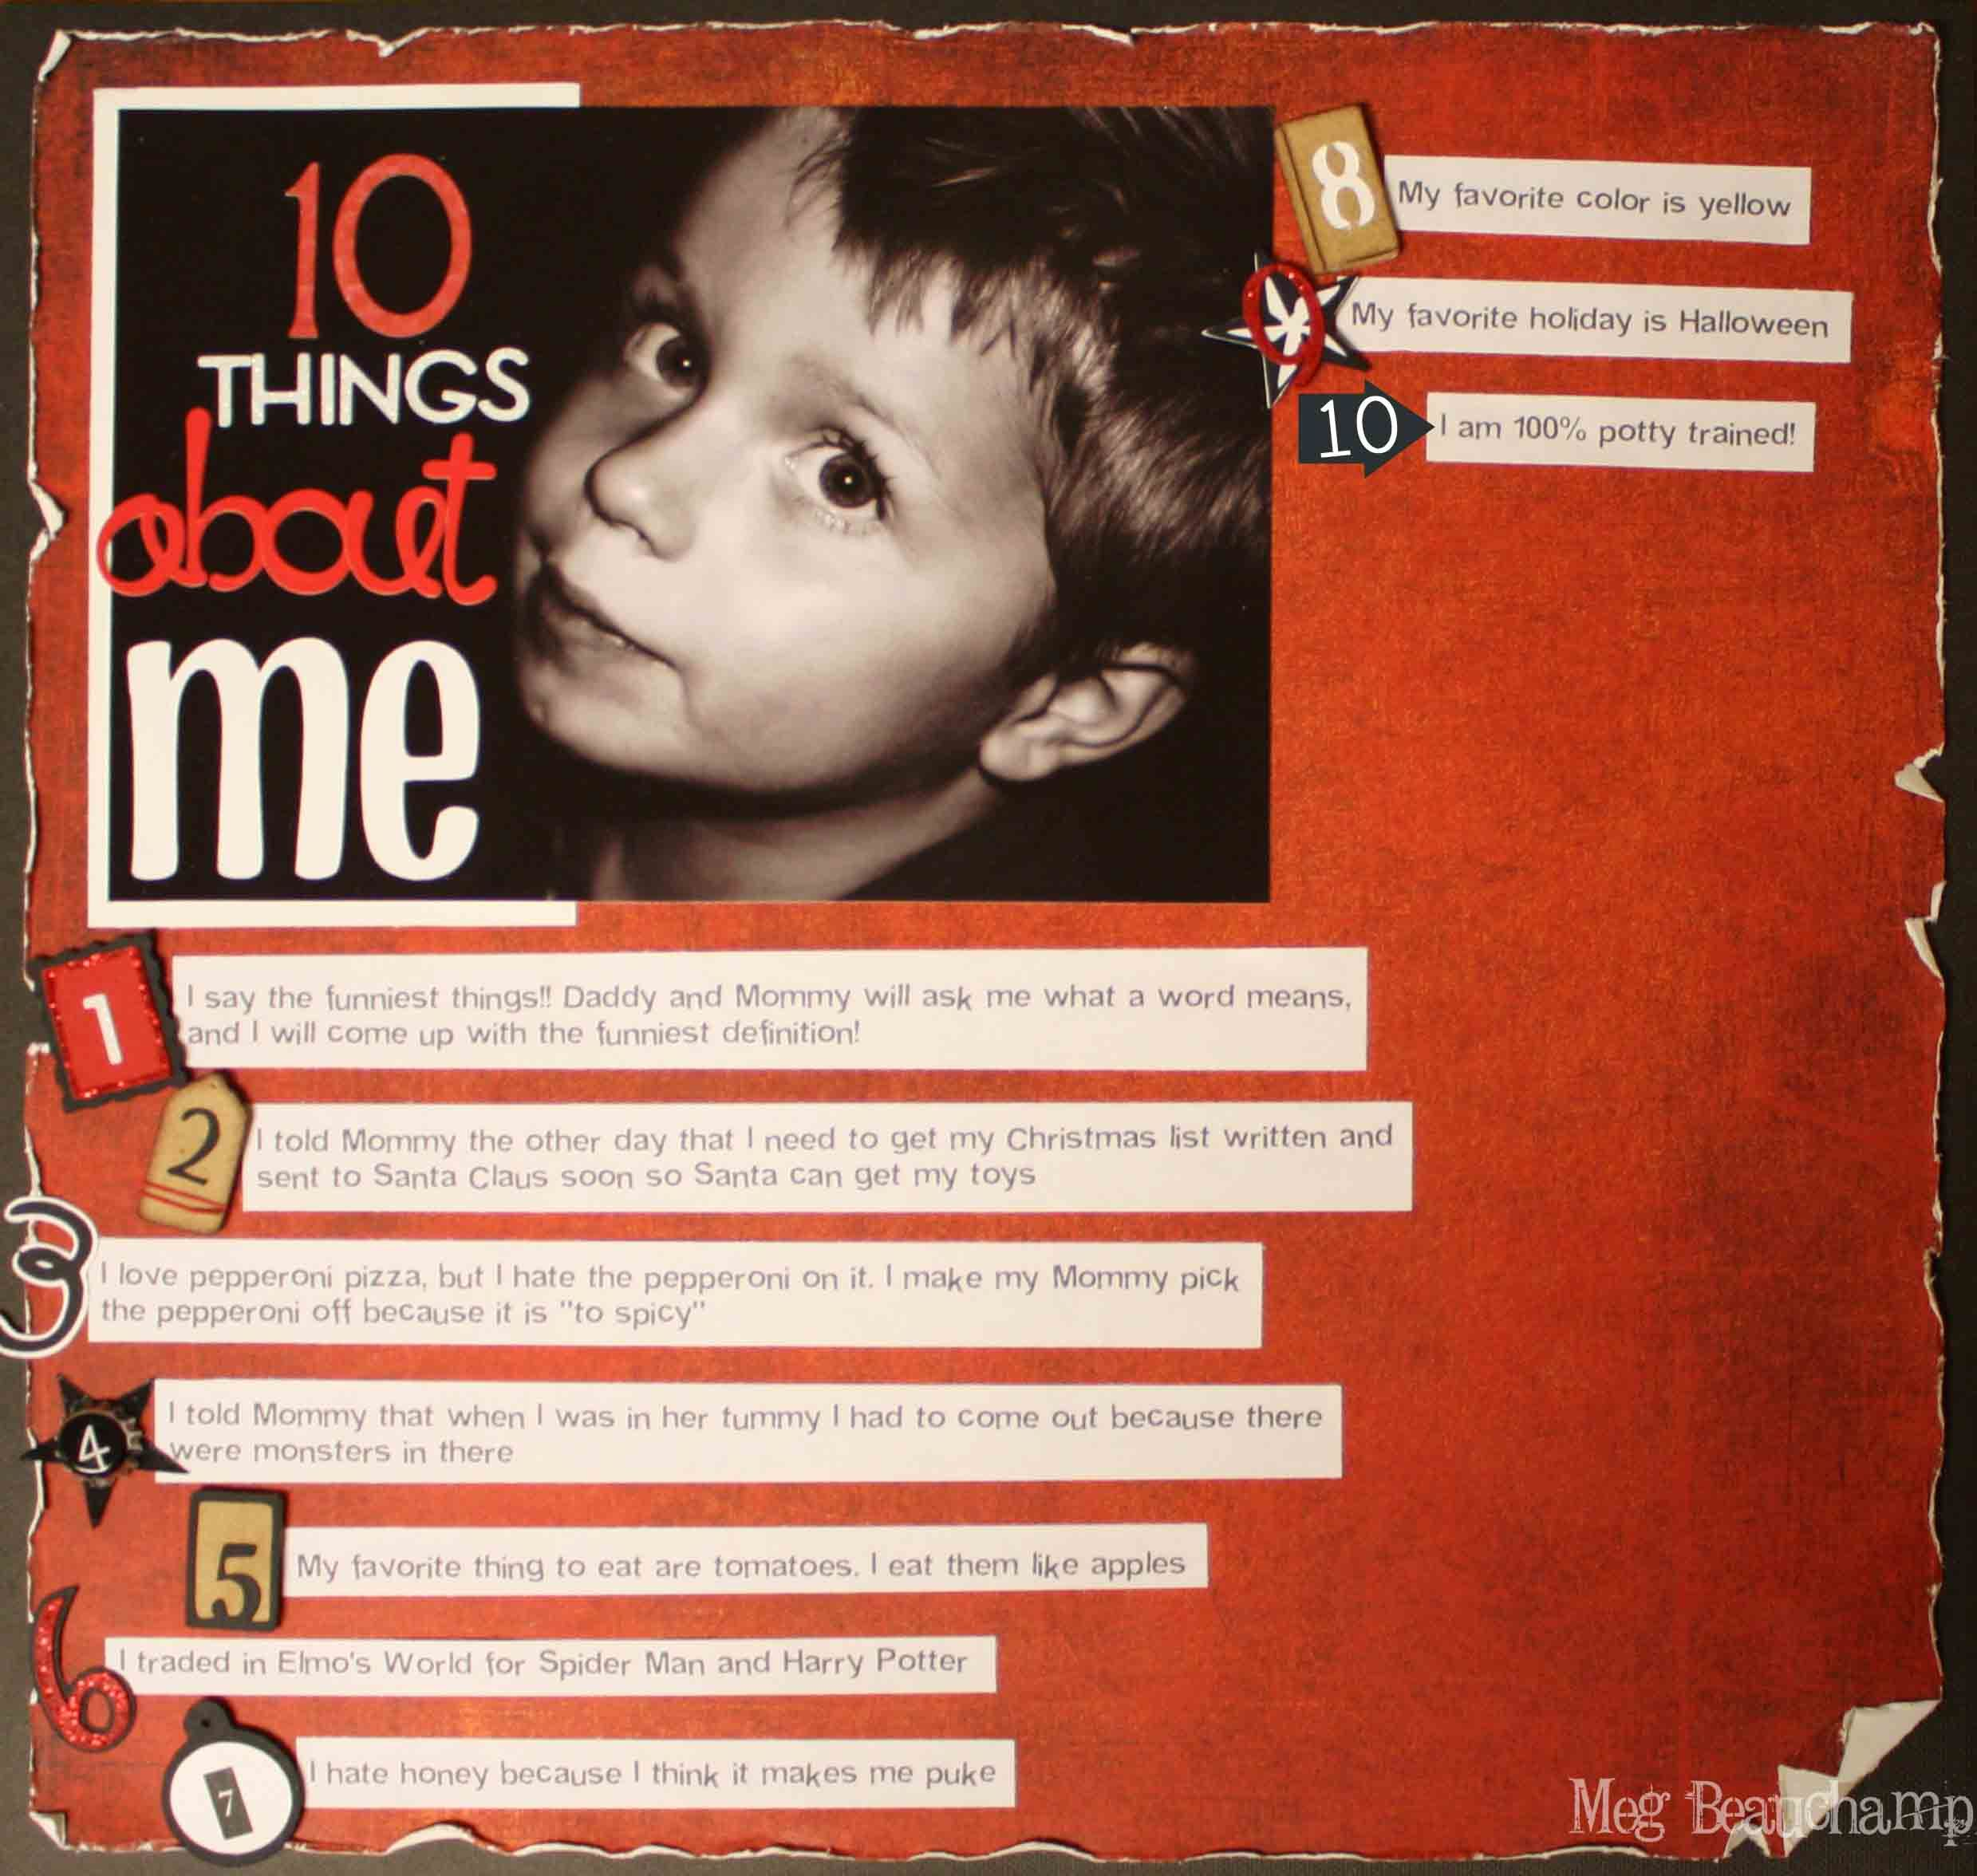 10 Things About Me Scrapbook Scrapbooking Pinterest